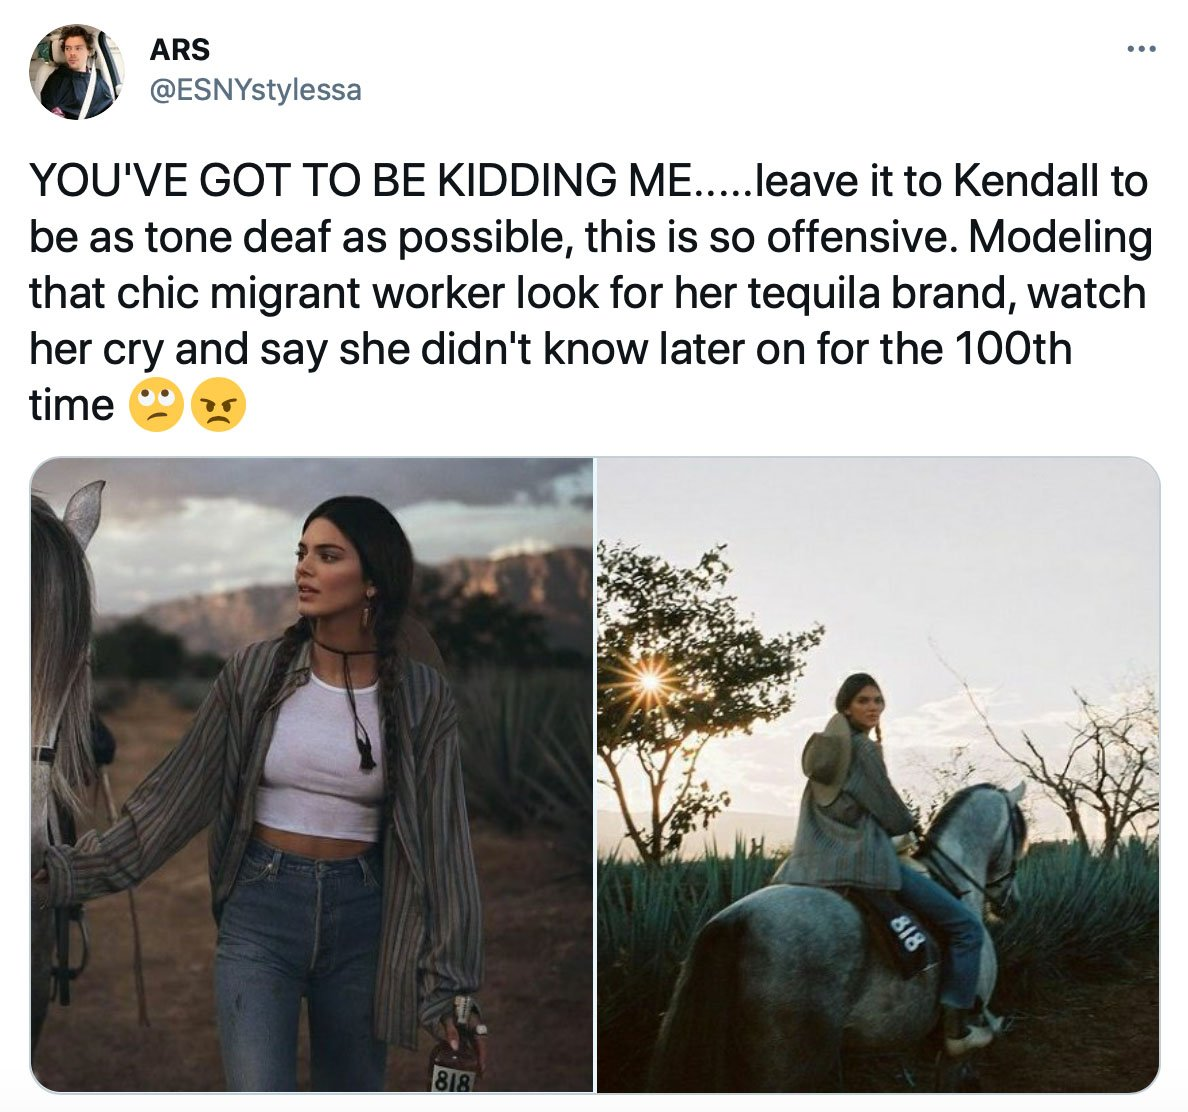 Kendall Jenner is being criticized for migrant chic cultural appropriation in new tequila ad